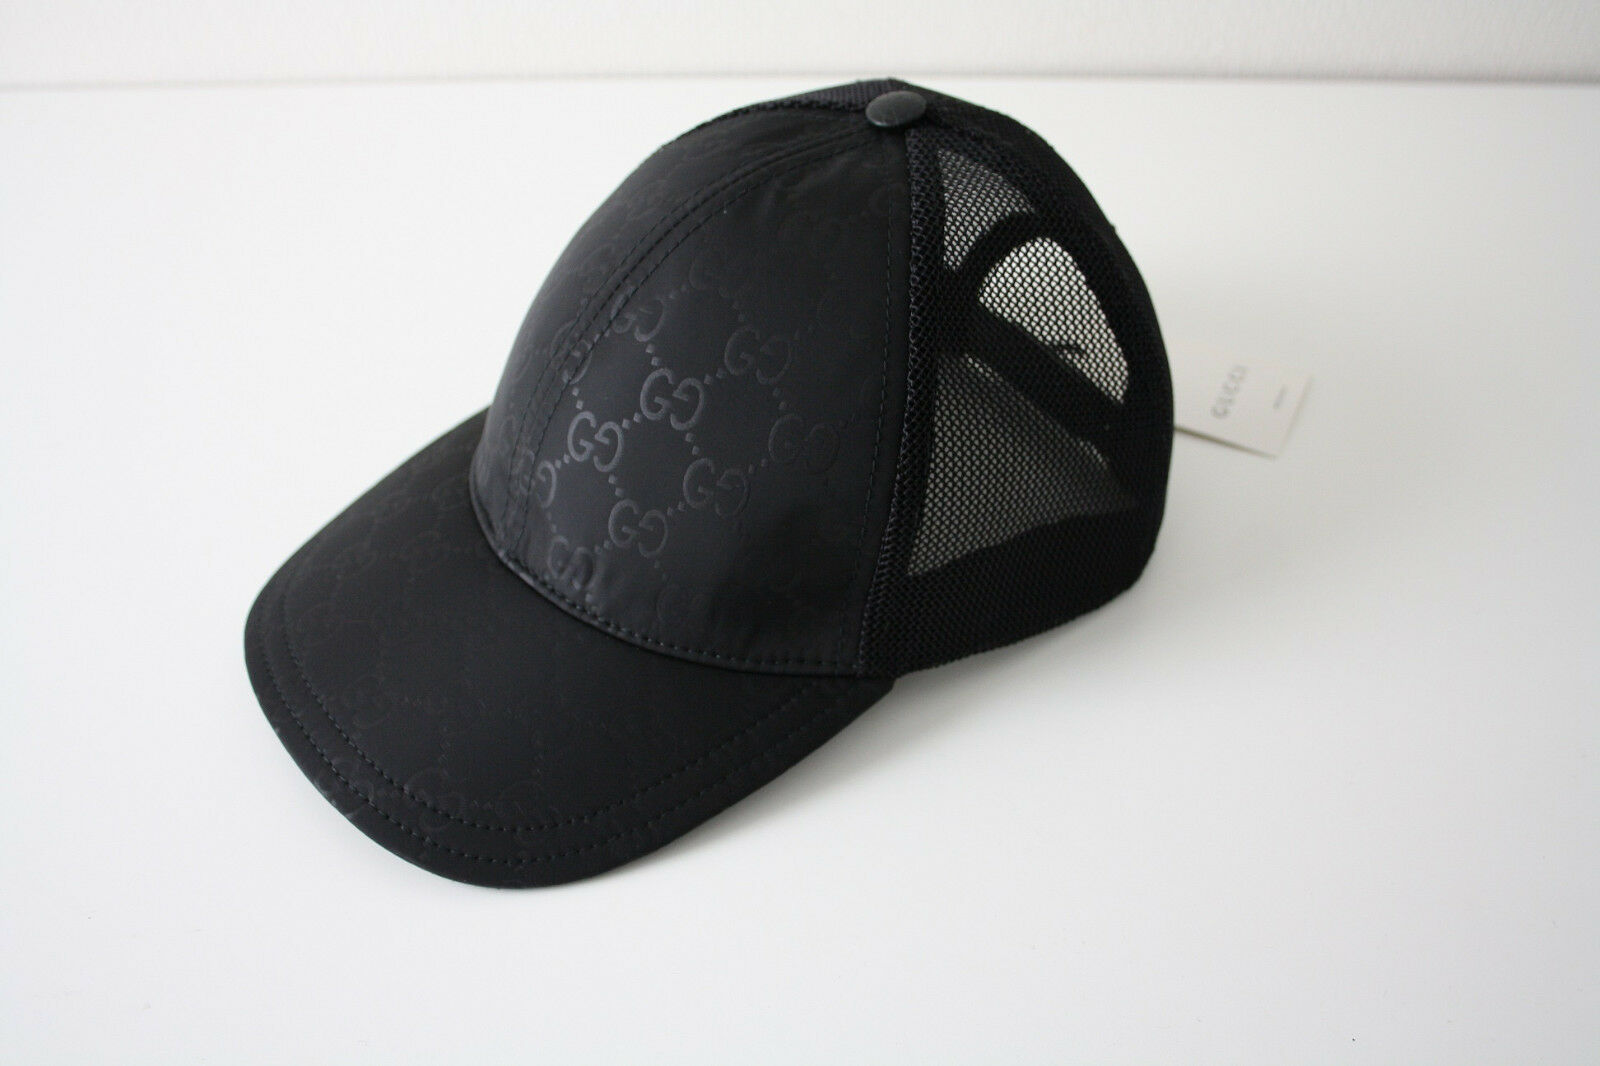 3b11c476228 Gucci Black GG Nylon Canvas Baseball Hat Size L (59) 510950 RARE ...